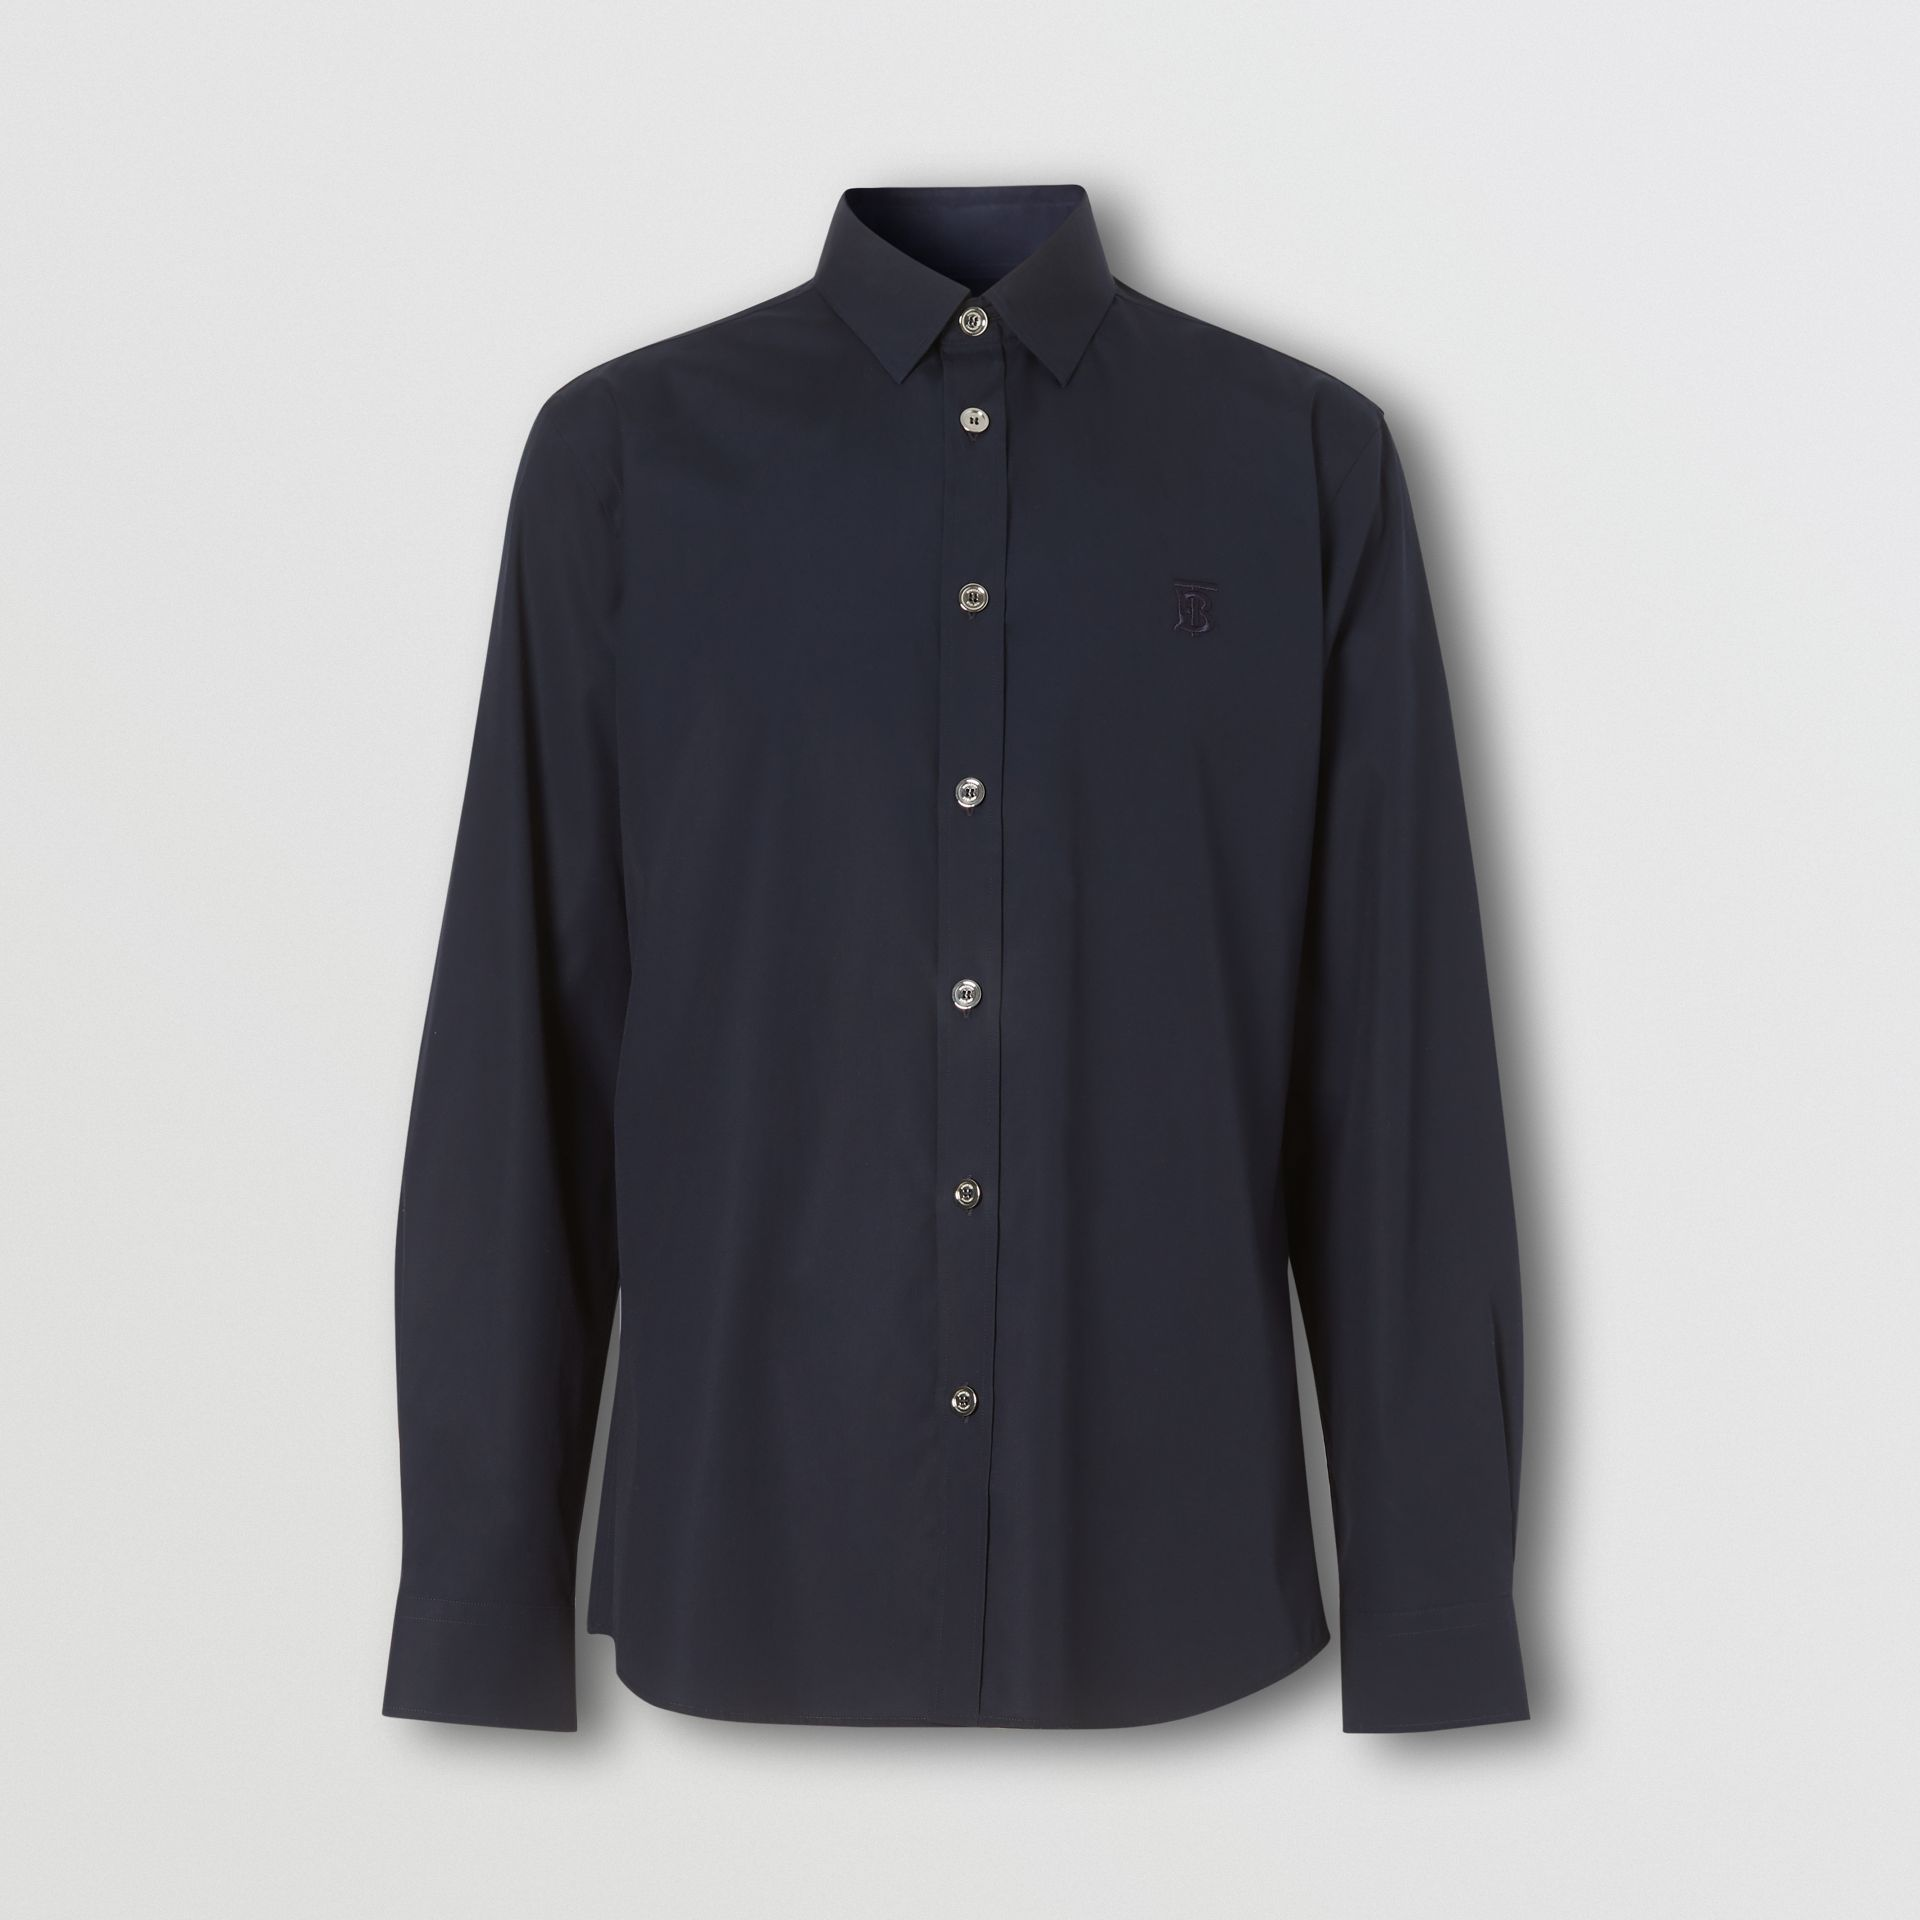 Monogram Motif Stretch Cotton Poplin Shirt in Navy - Men | Burberry Australia - gallery image 3